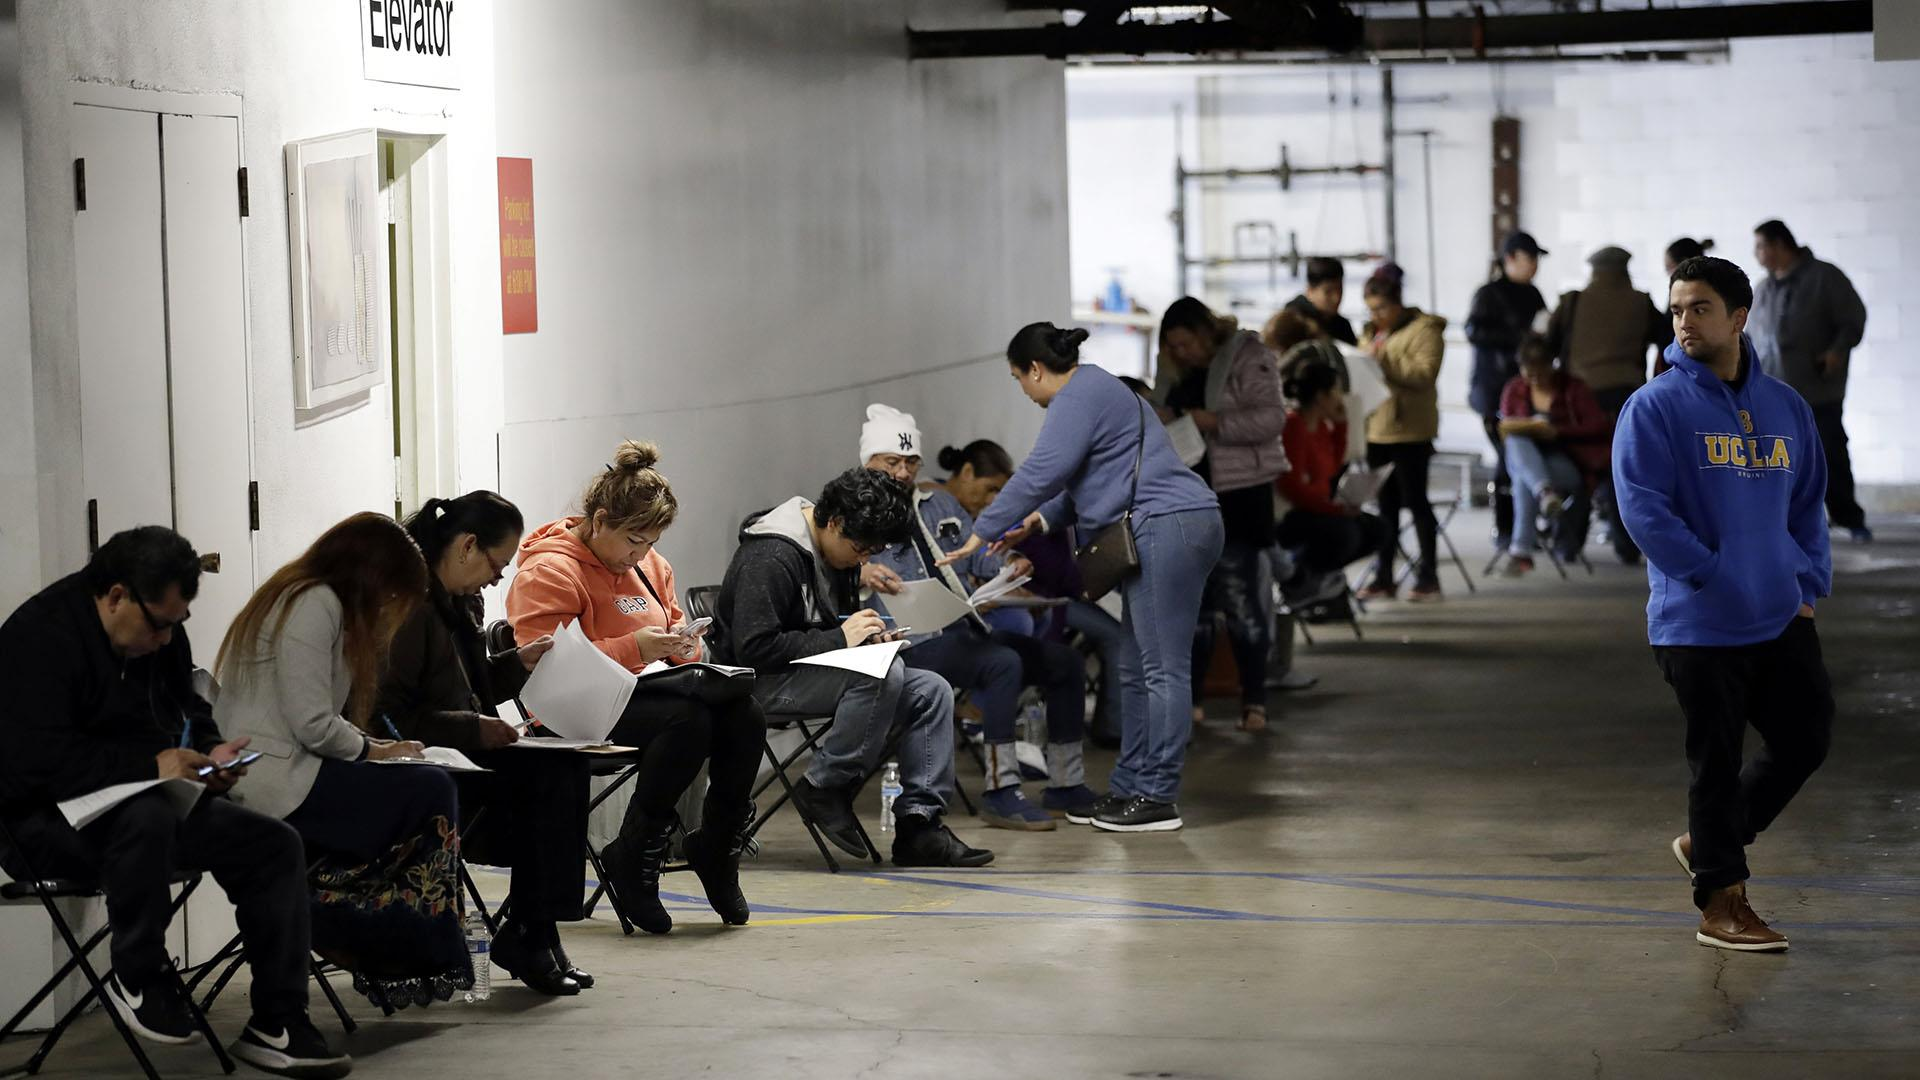 A record 6.6 million Americans filed for unemployment last week